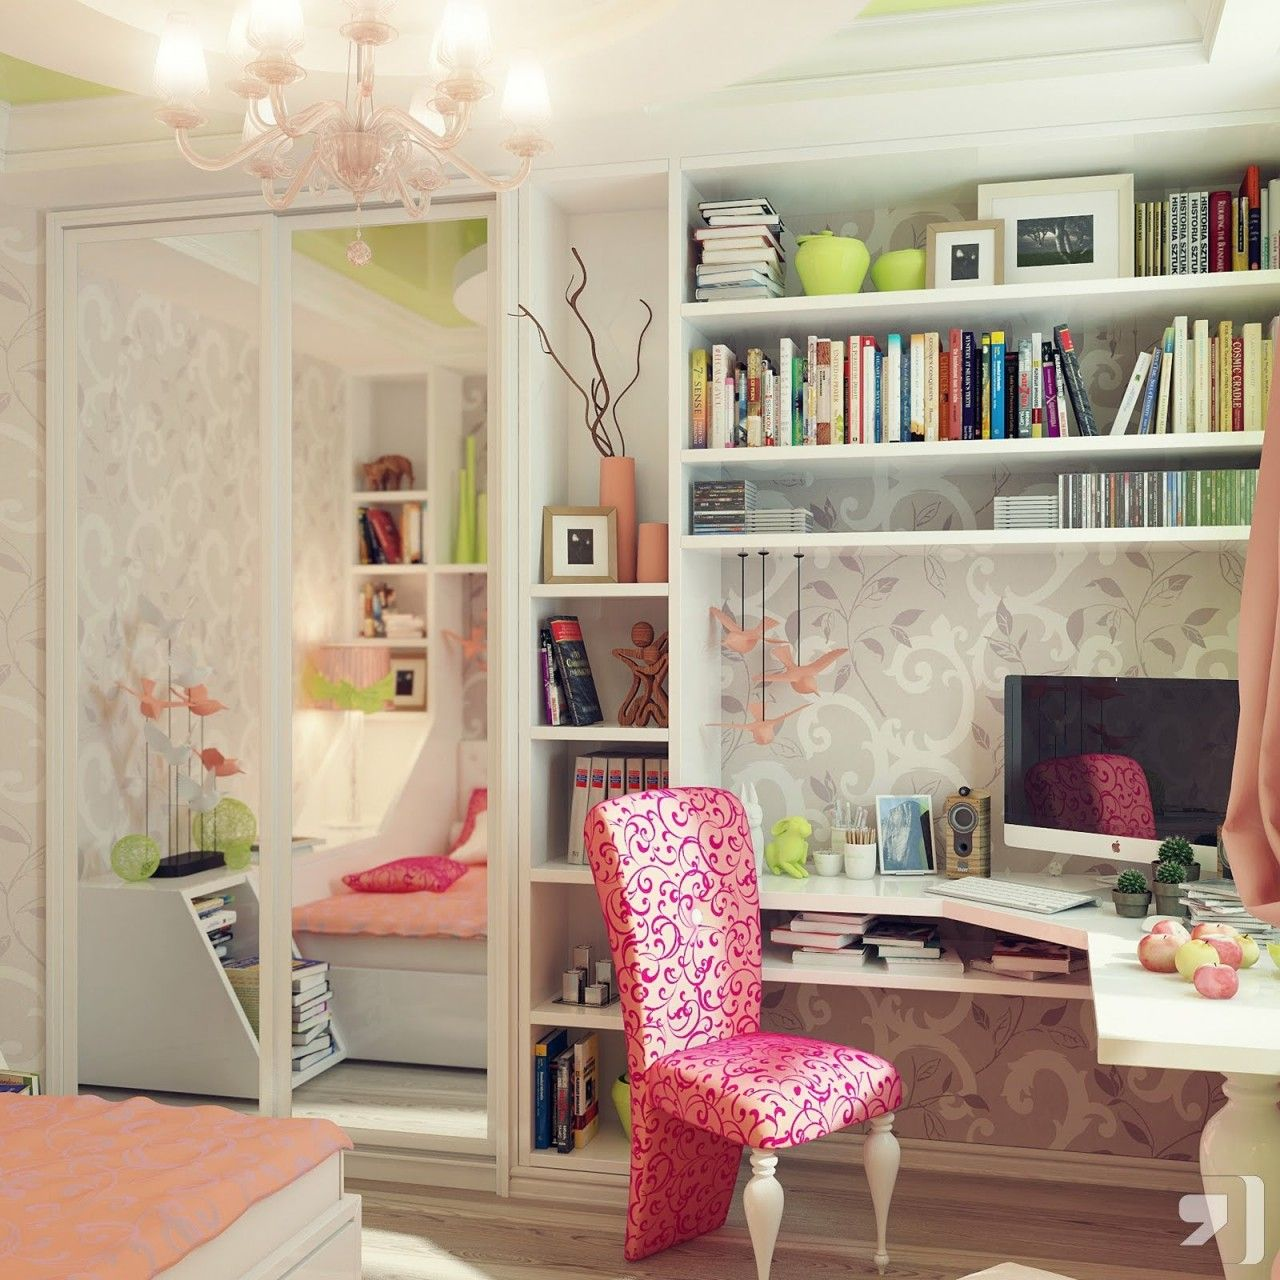 Bedroom, Awesome Storage Space With White Book Shelves And